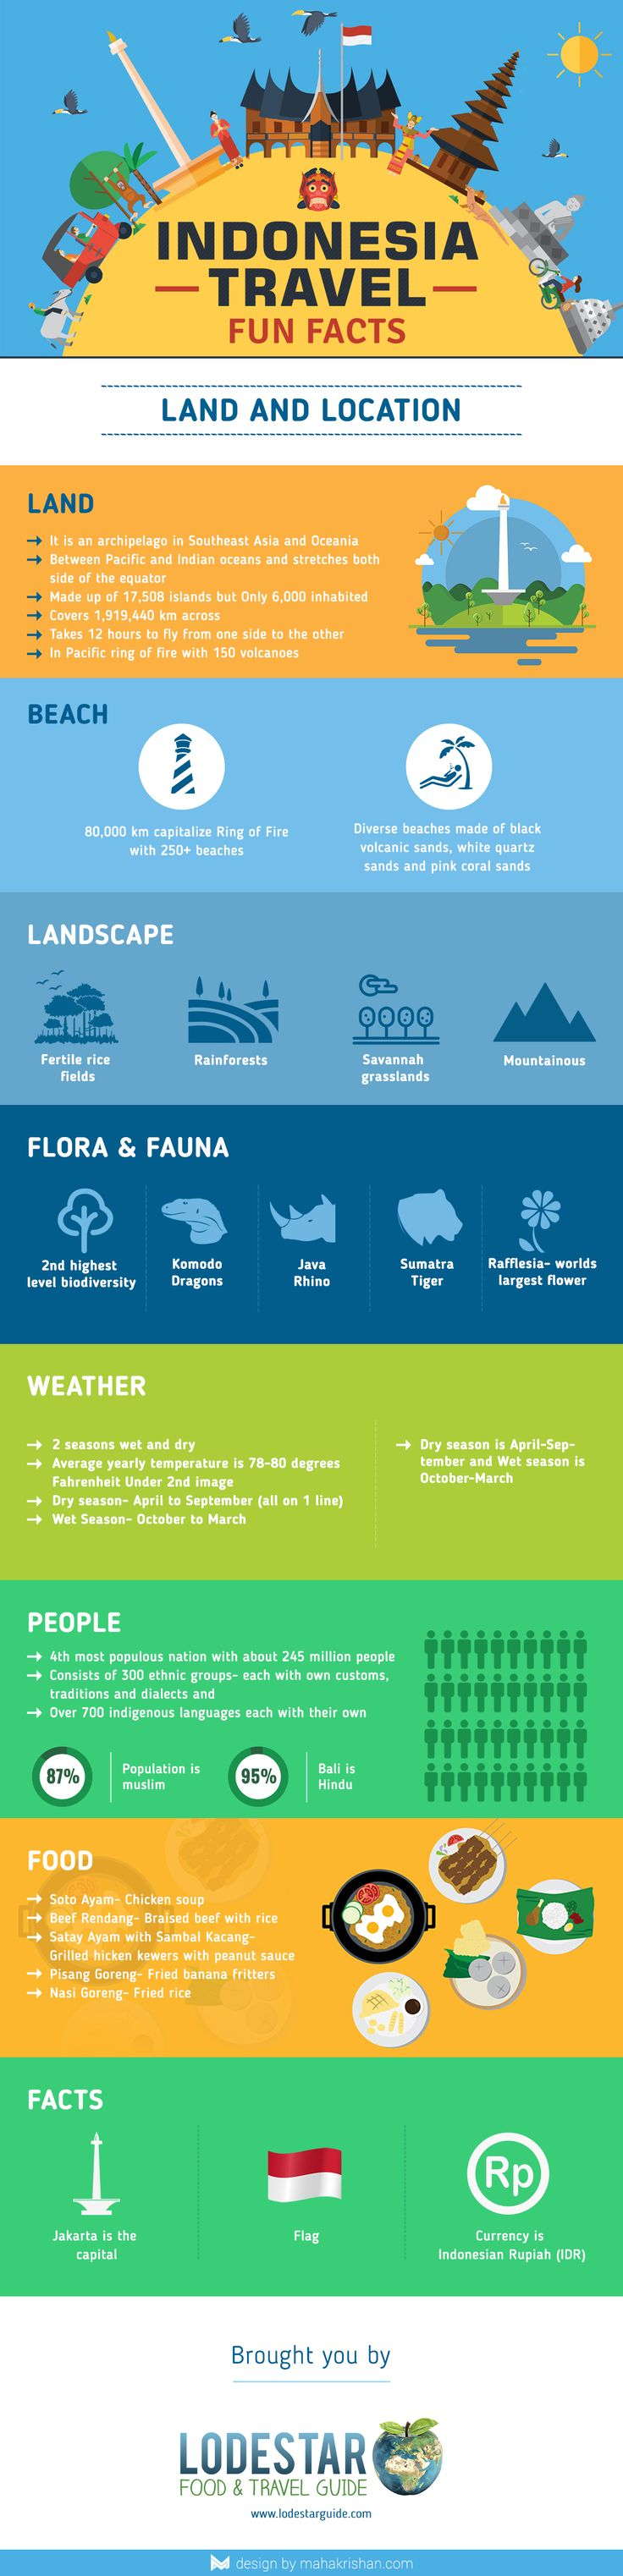 """Check out my Behance project """"Indonesia Travel Fun Facts Infographic by Mahakrishan"""""""